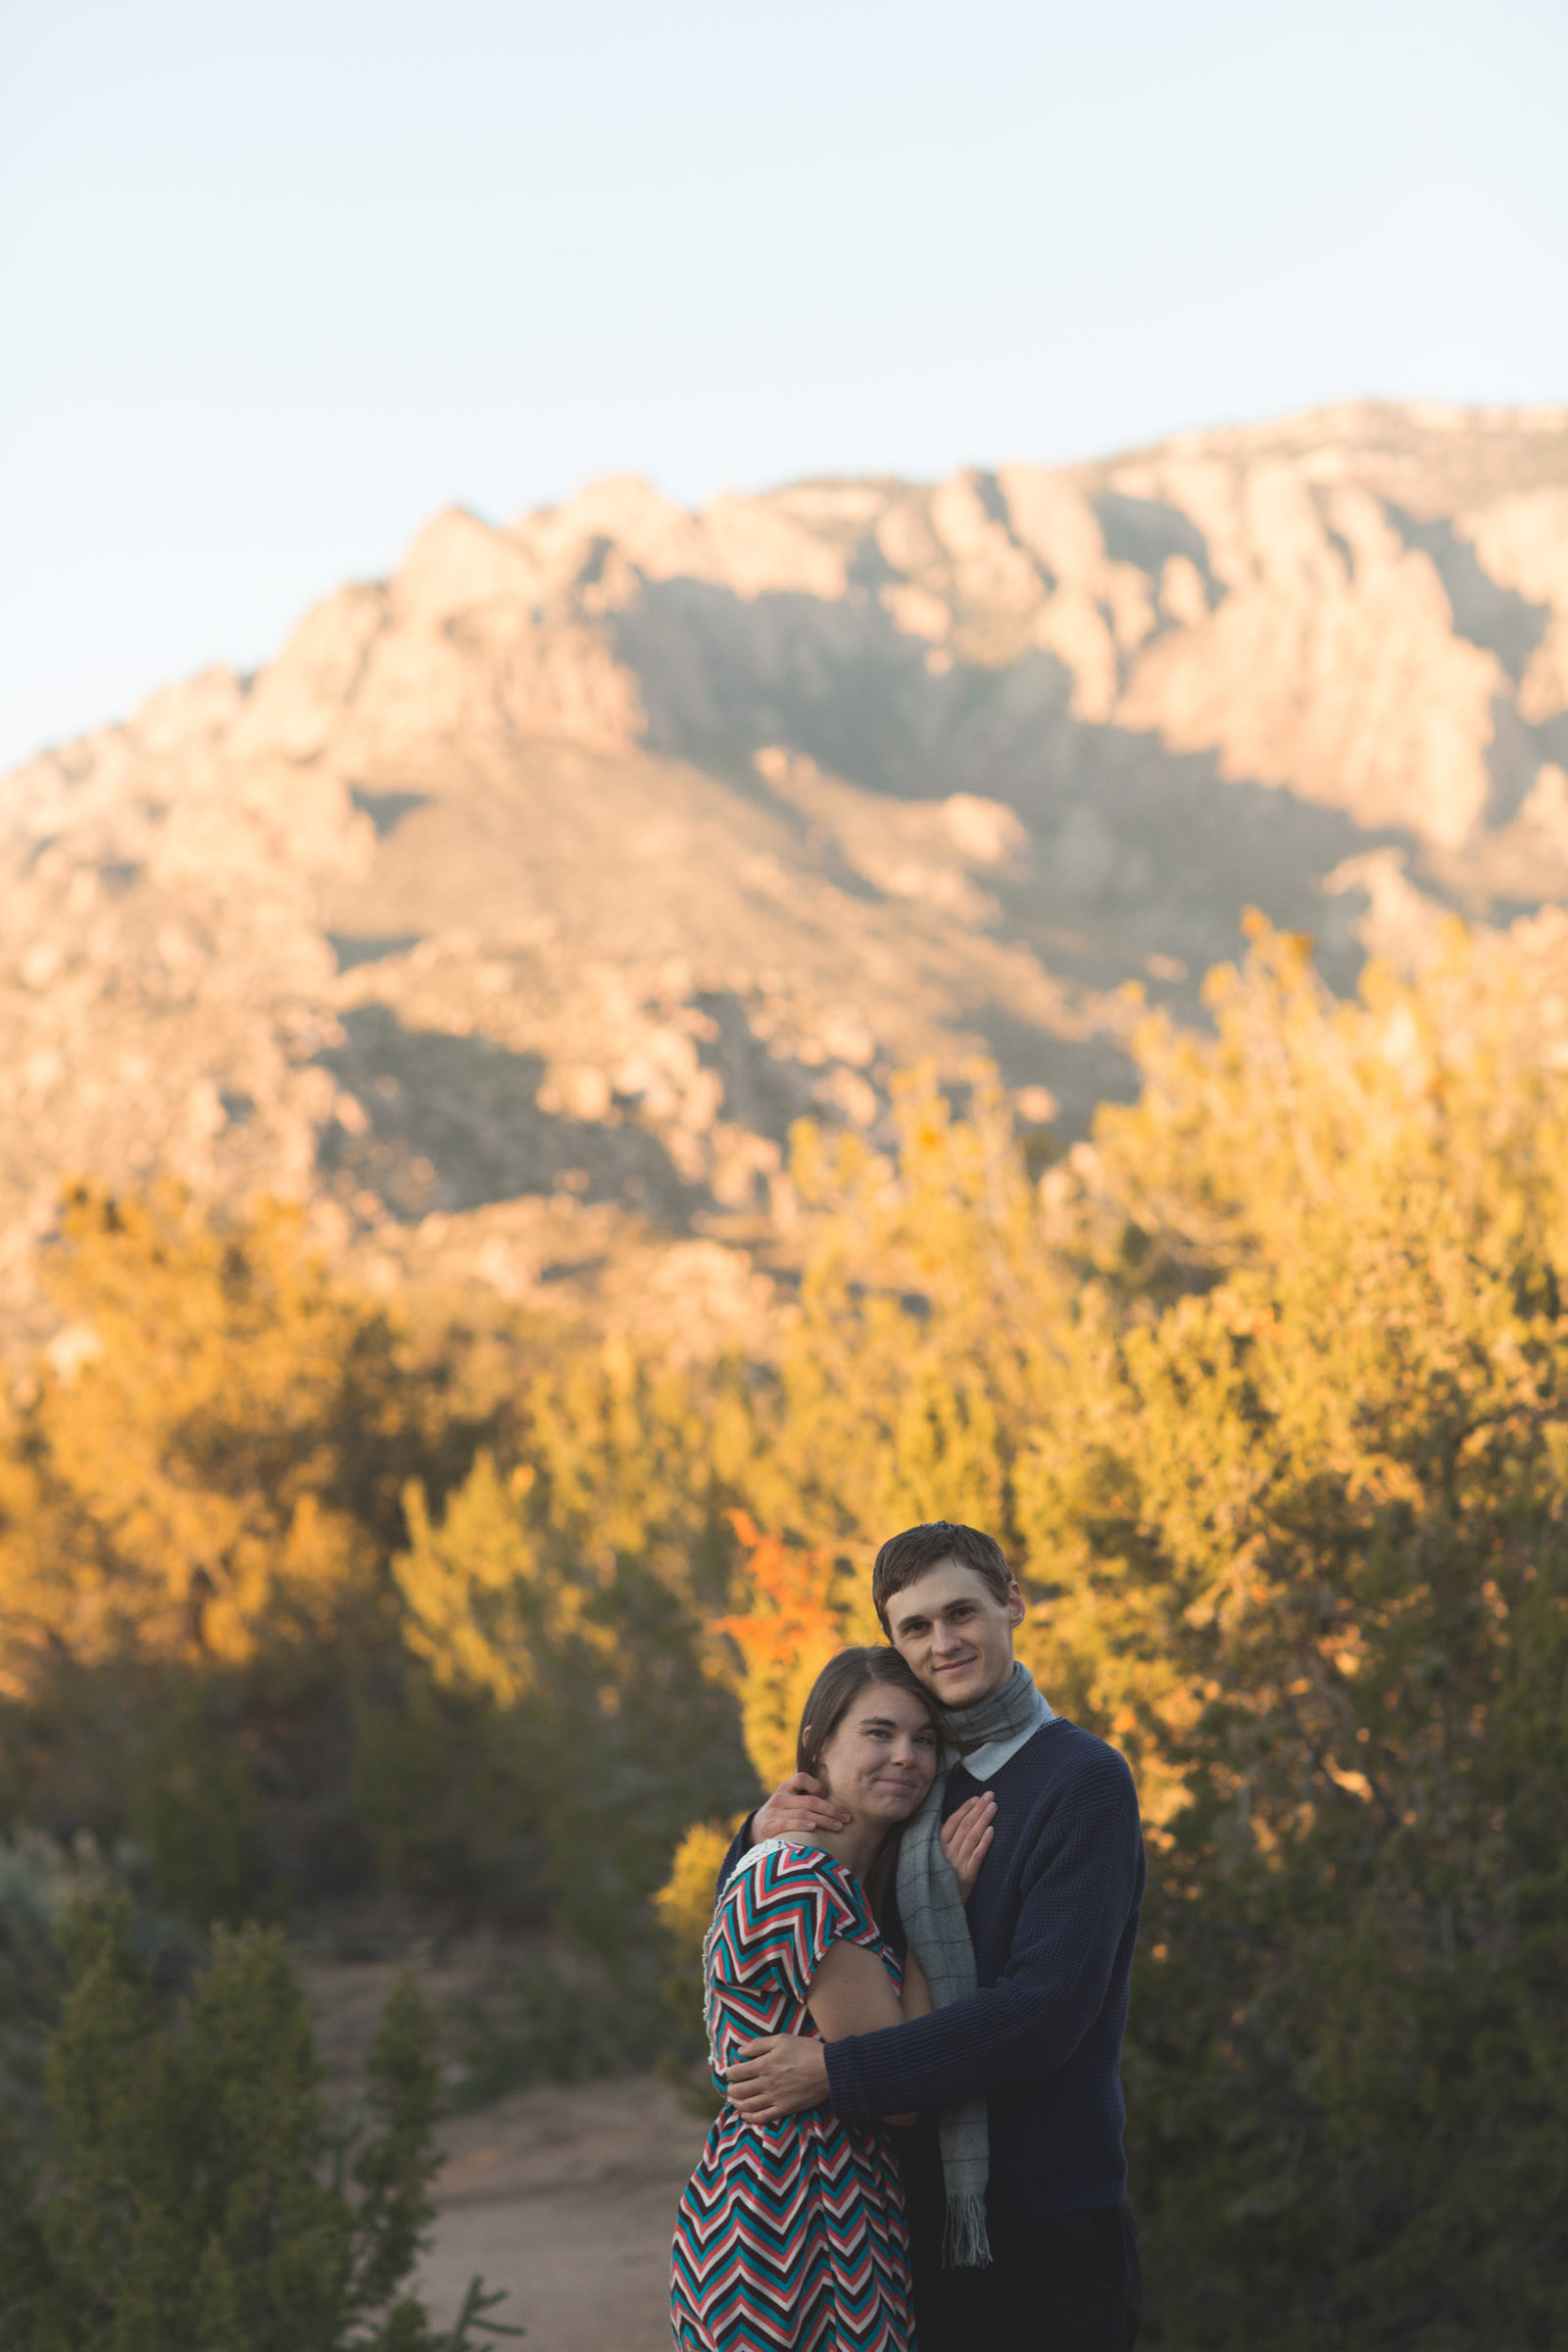 094-engagement-photographers-in-nm-farmington-and-albuquerque